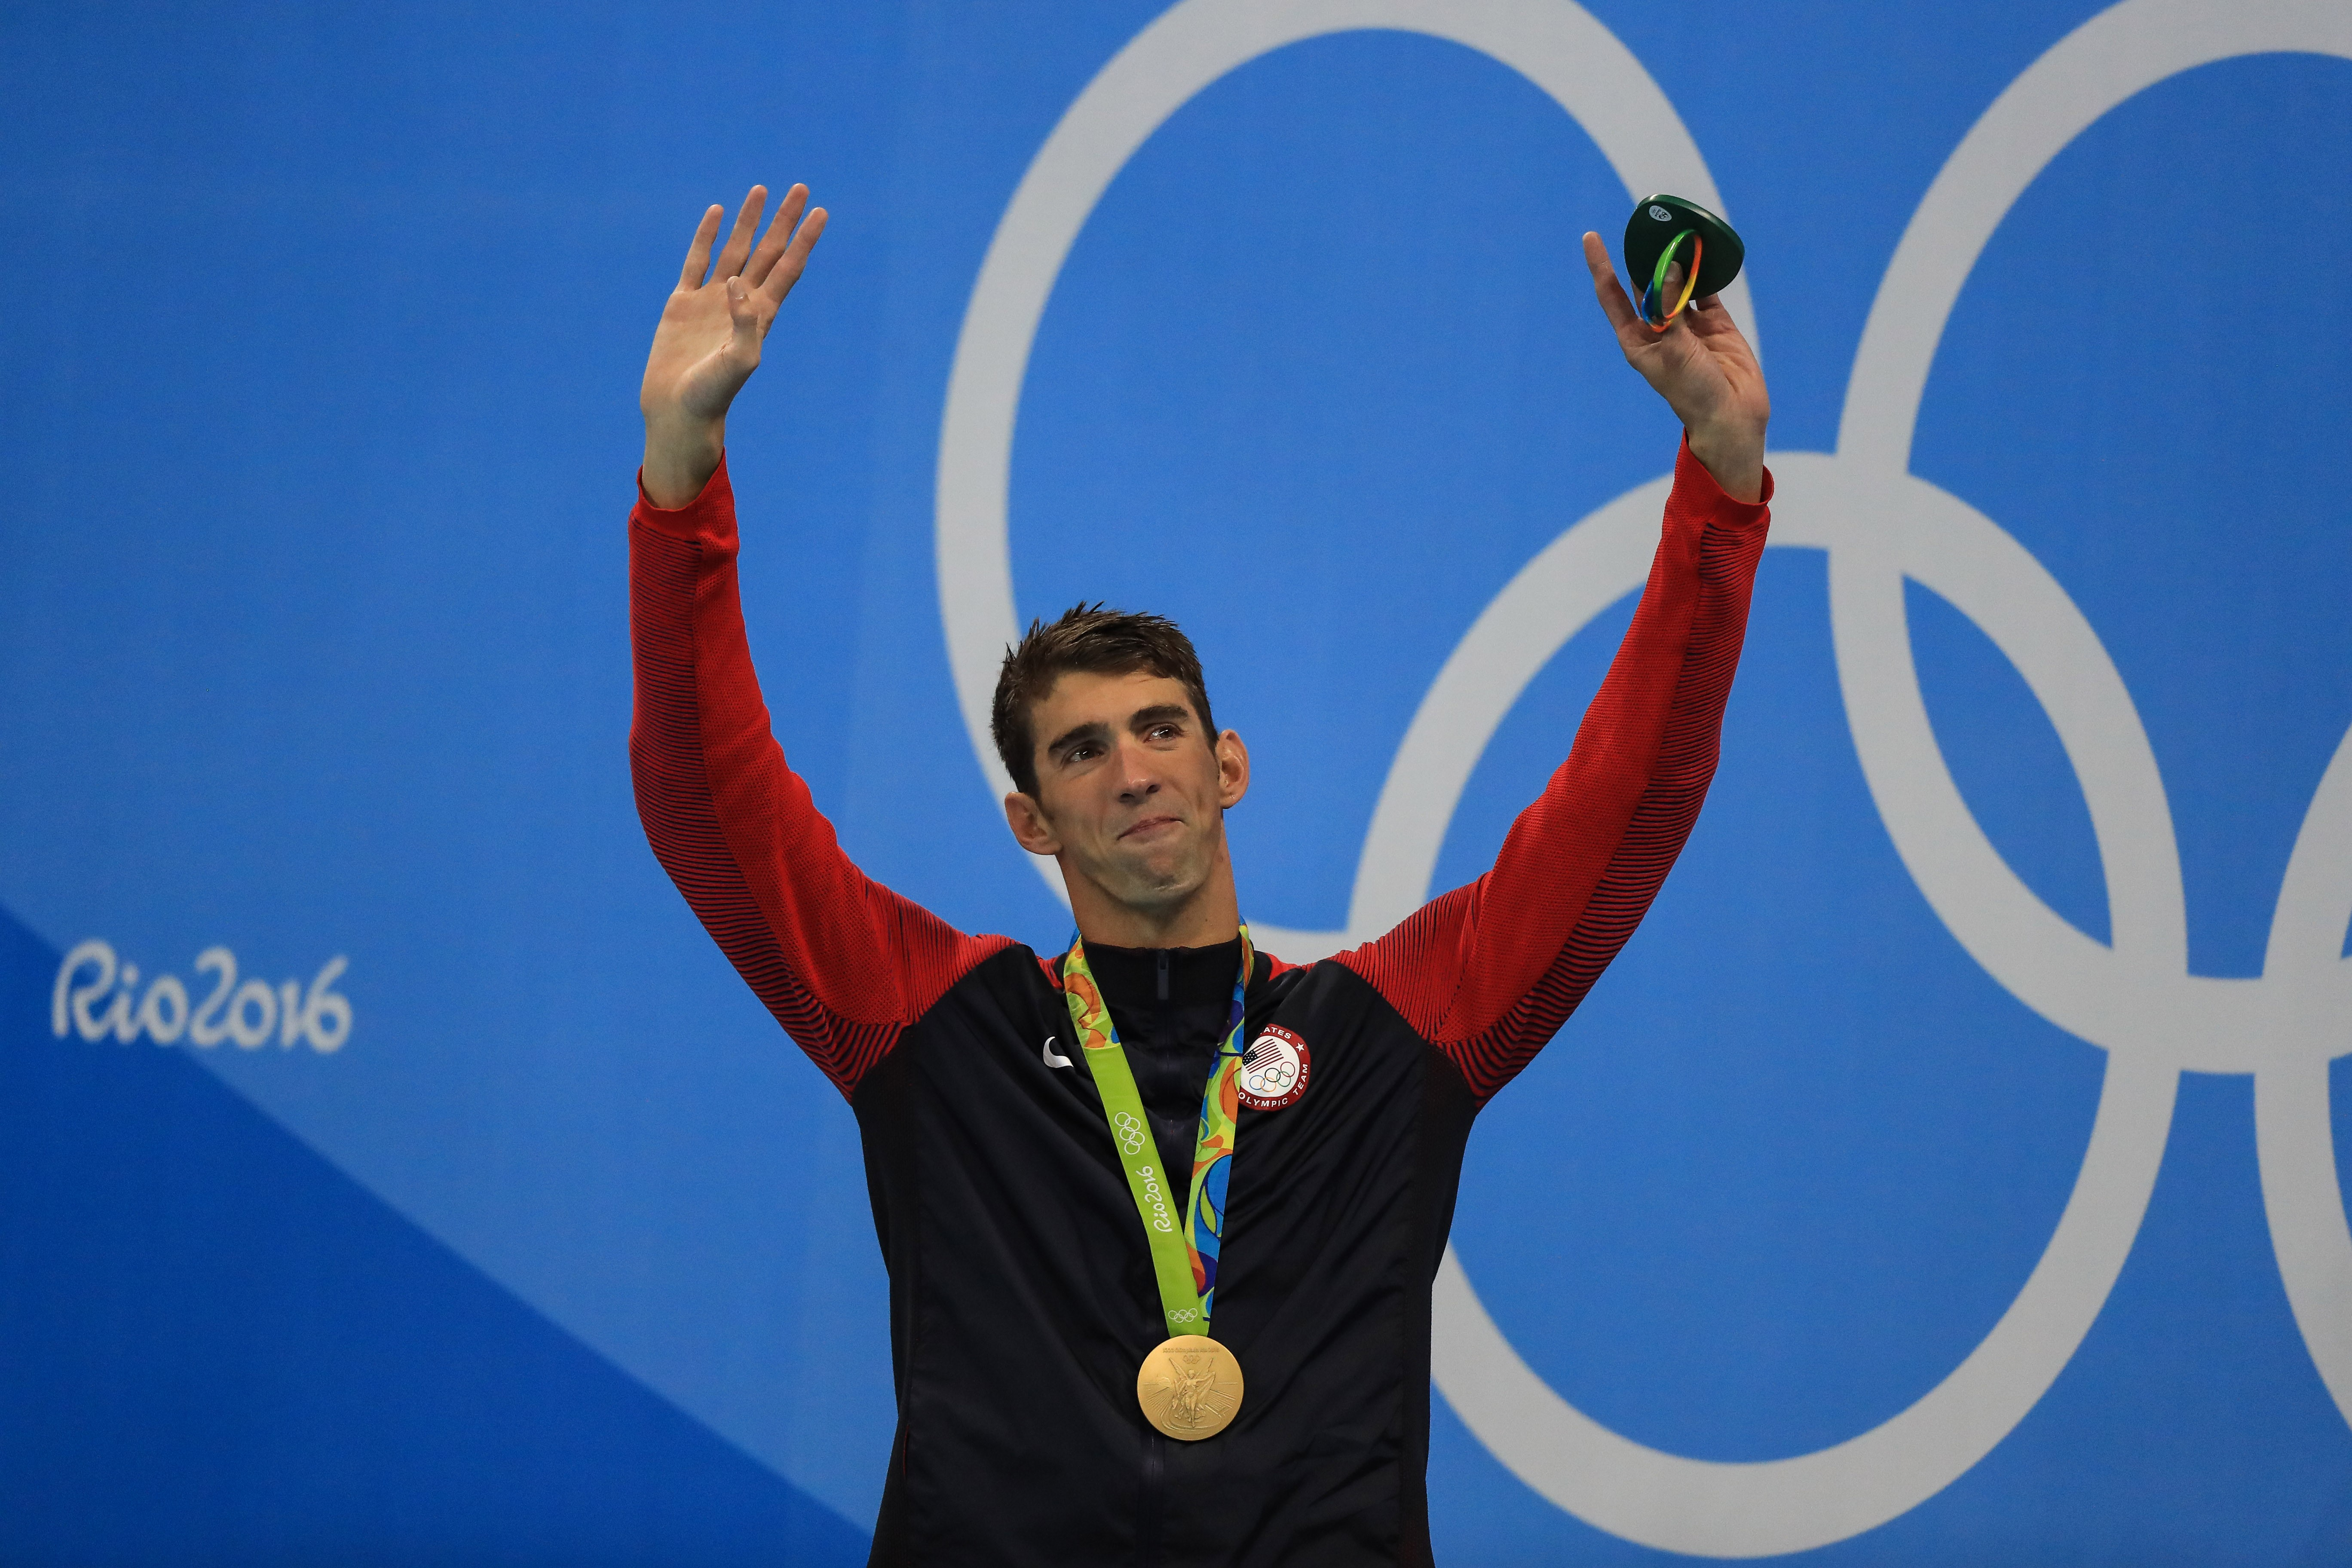 This Olympic swimmer bows down to Michael Phelps, and yeah, we agree